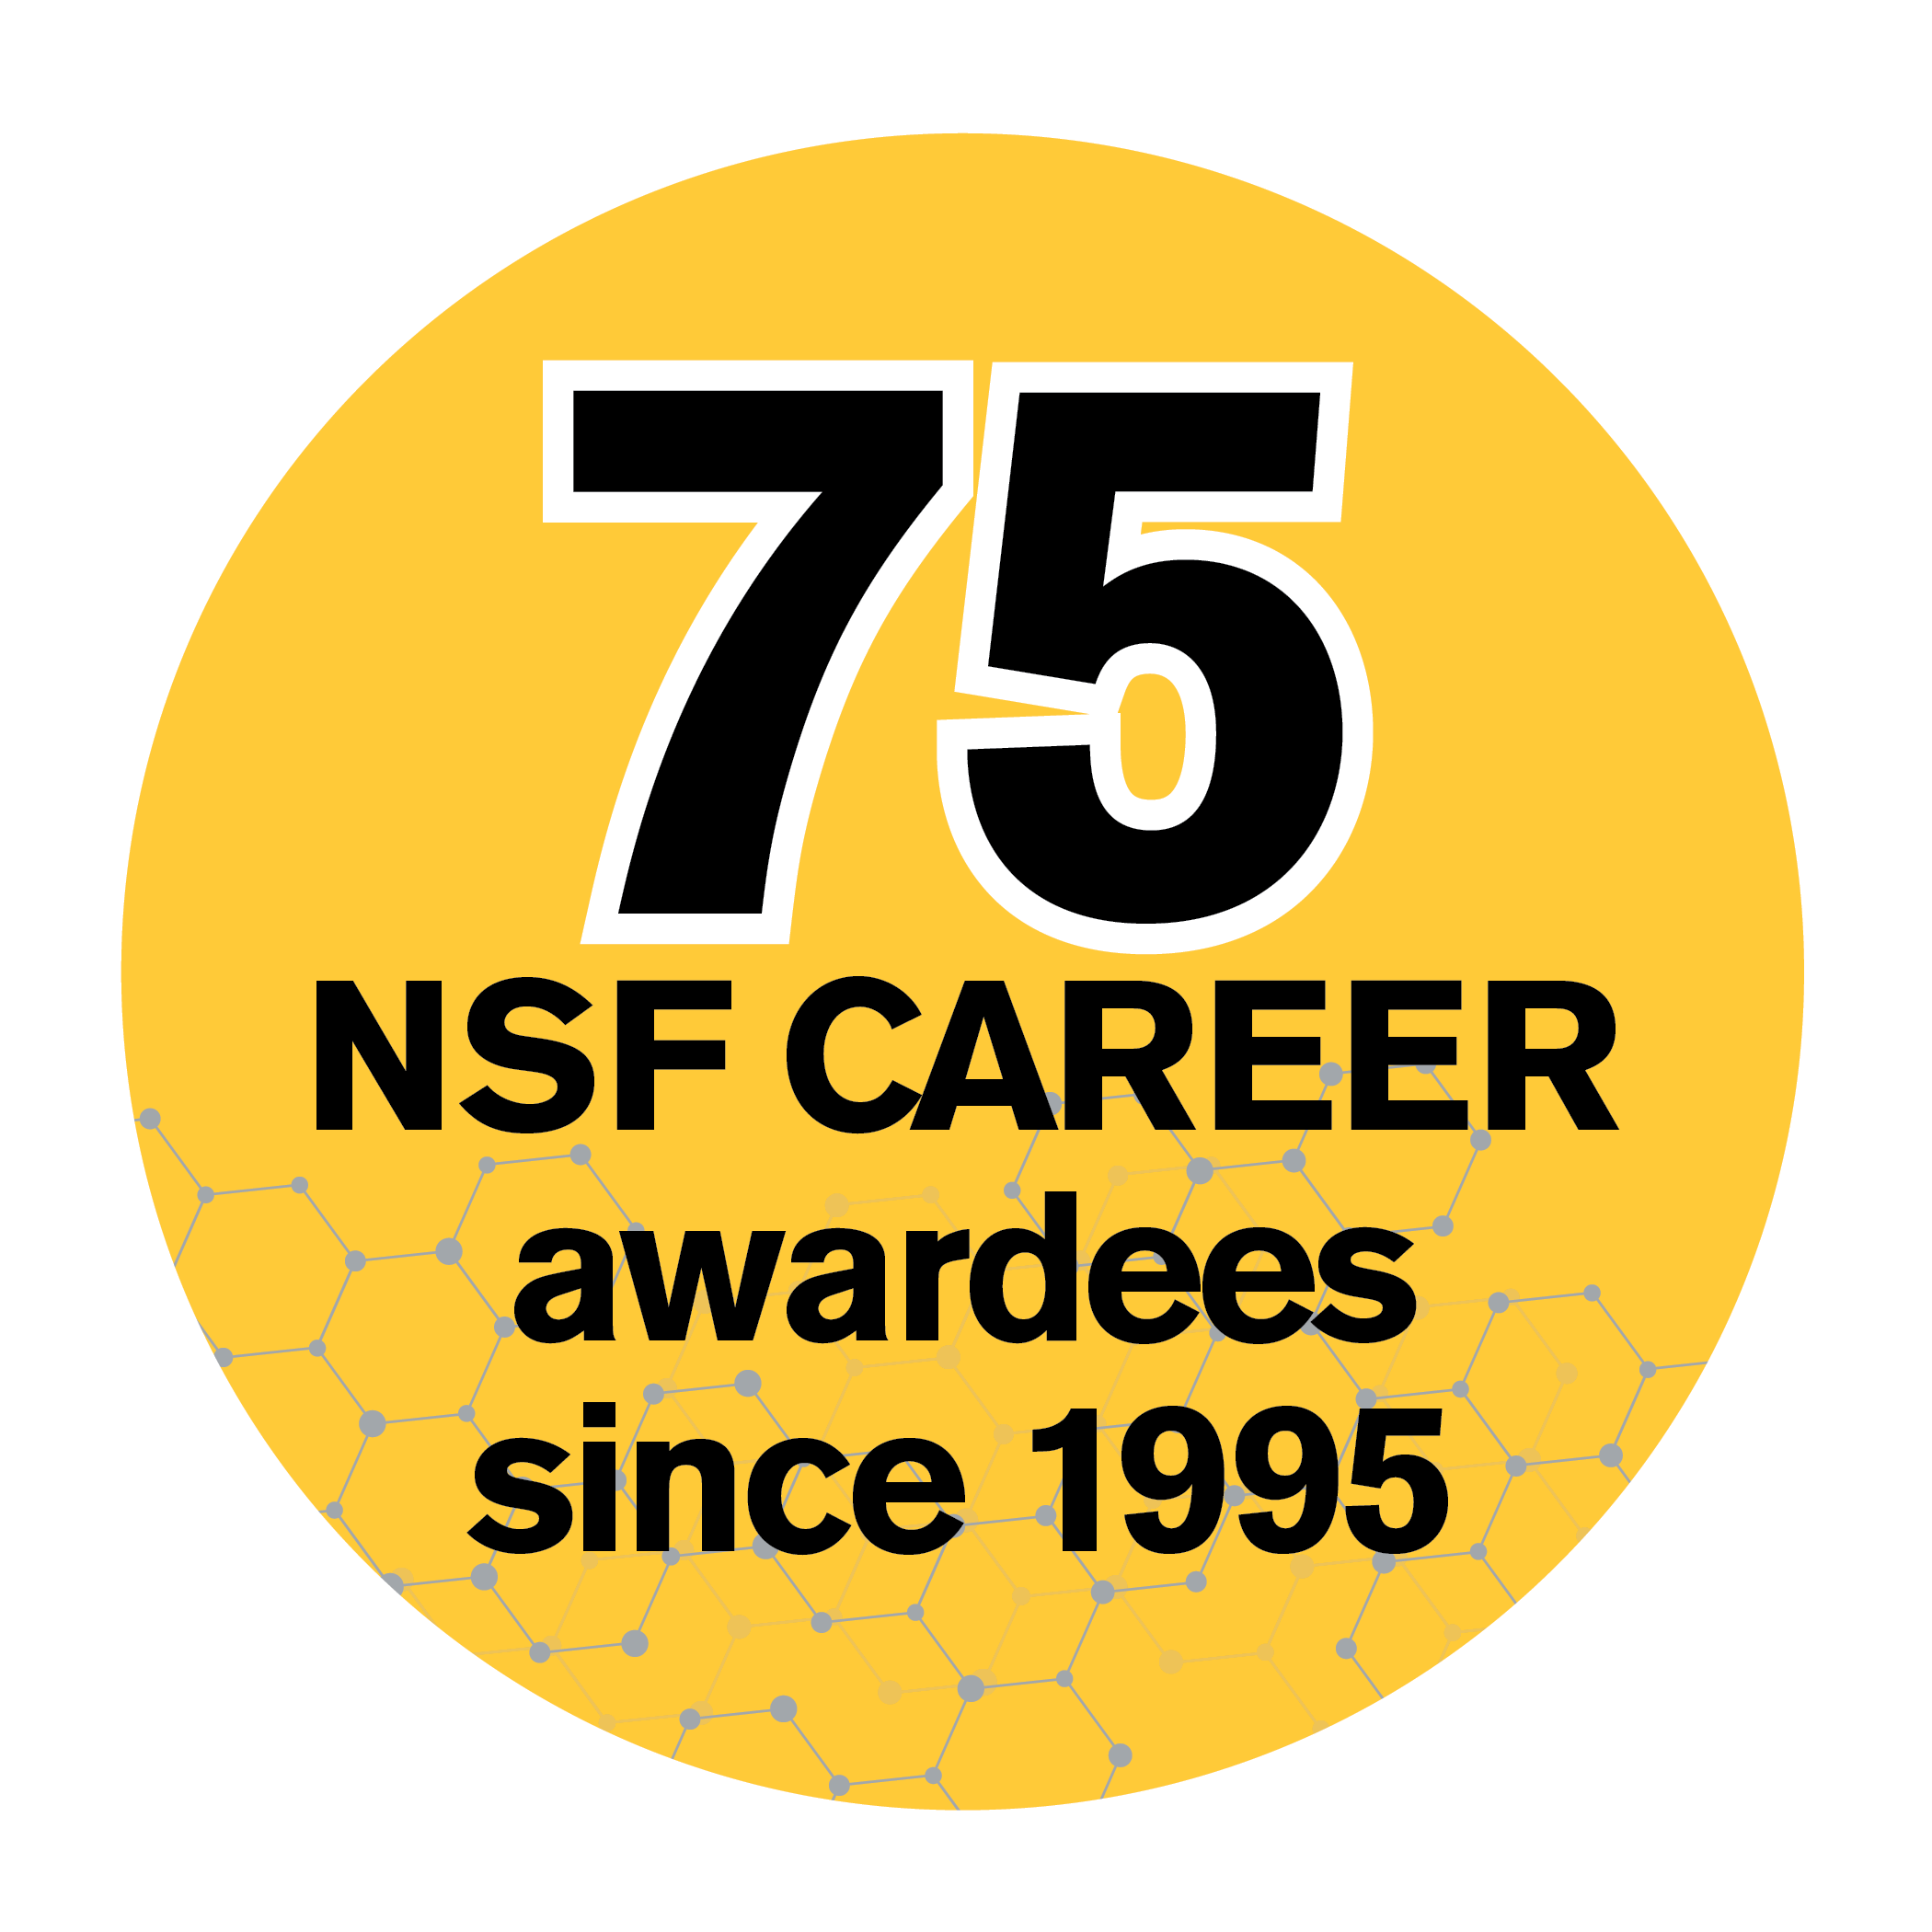 75 NSF CAREER awards since 1995